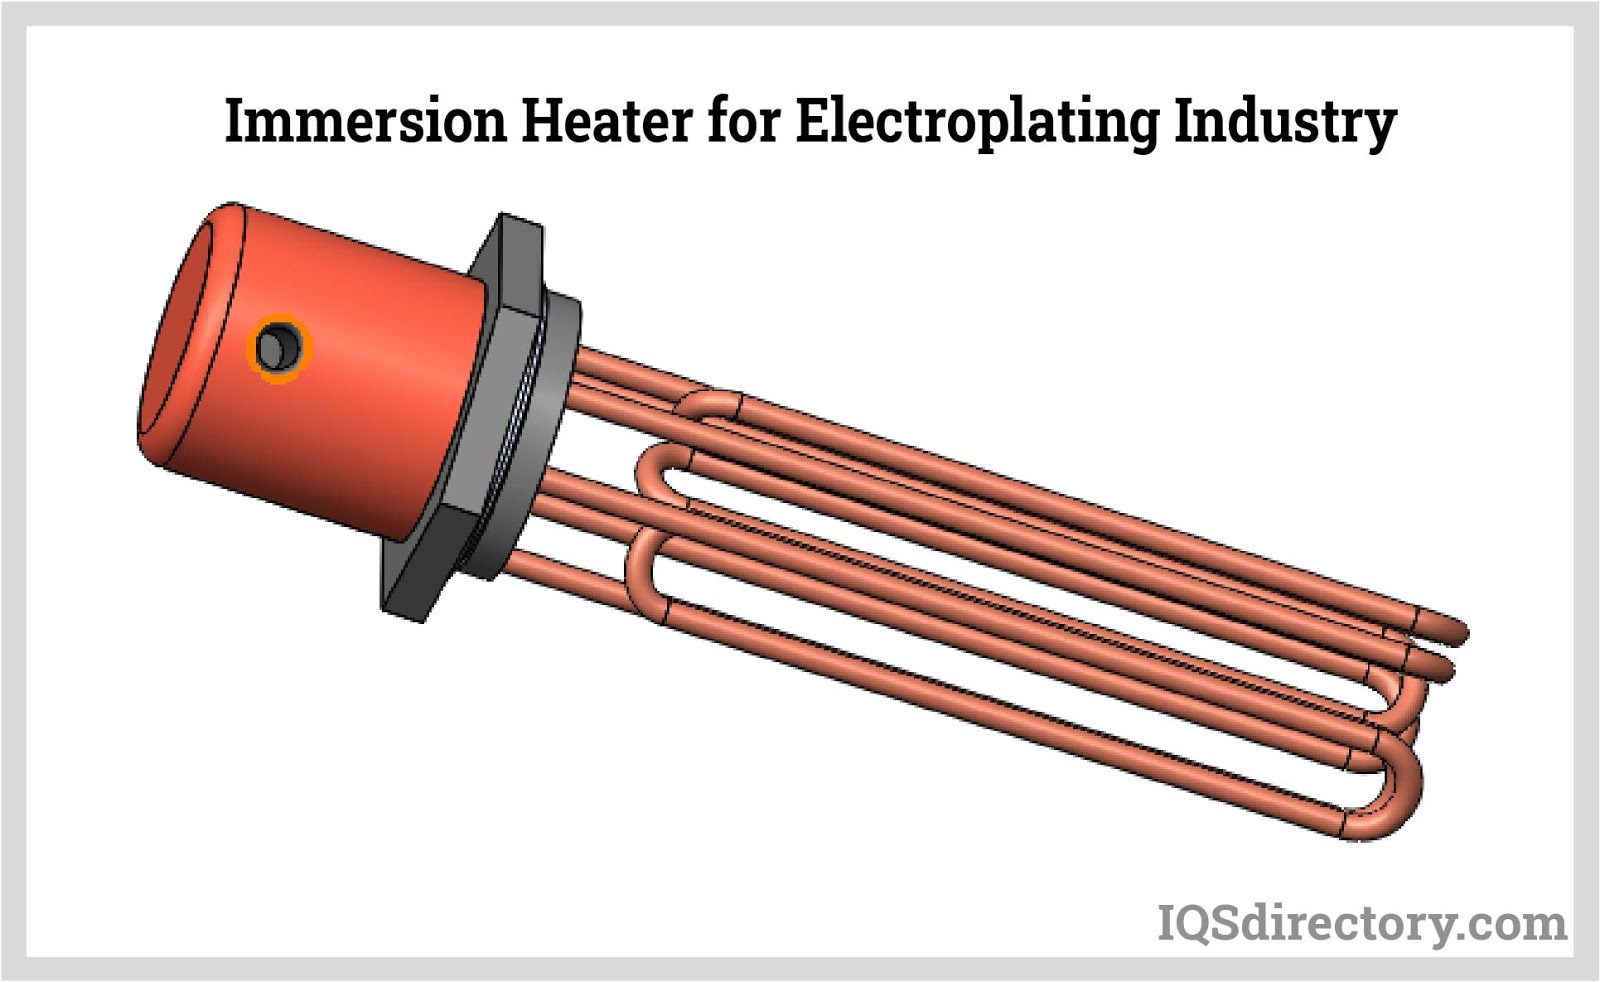 Immersion Heater for Electroplating Industry